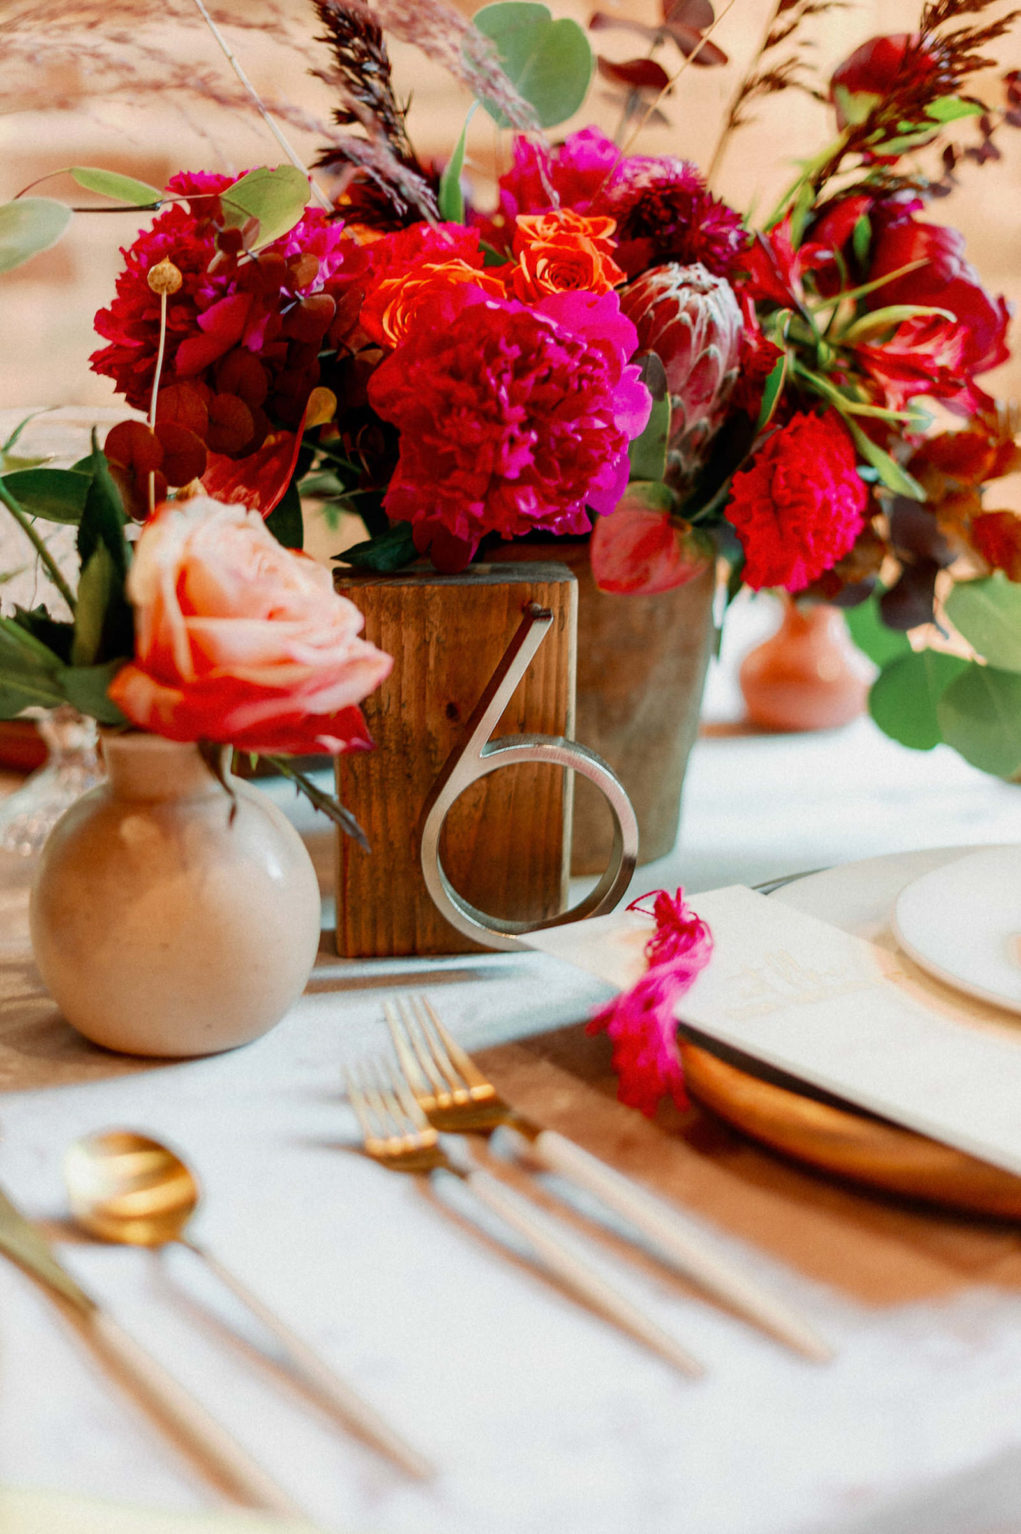 Whimsical and Colorful Wedding Reception Tablescape Decor, Fuschia Pink Flowers, Pink King Protea, Eucalyptus Low Floral Centerpiece, Wooden Table Number, Gold and White Flatware   Tampa Bay Wedding Photographer Dewitt for Love   Wedding Linen Rentals Kate Ryan Event Rentals